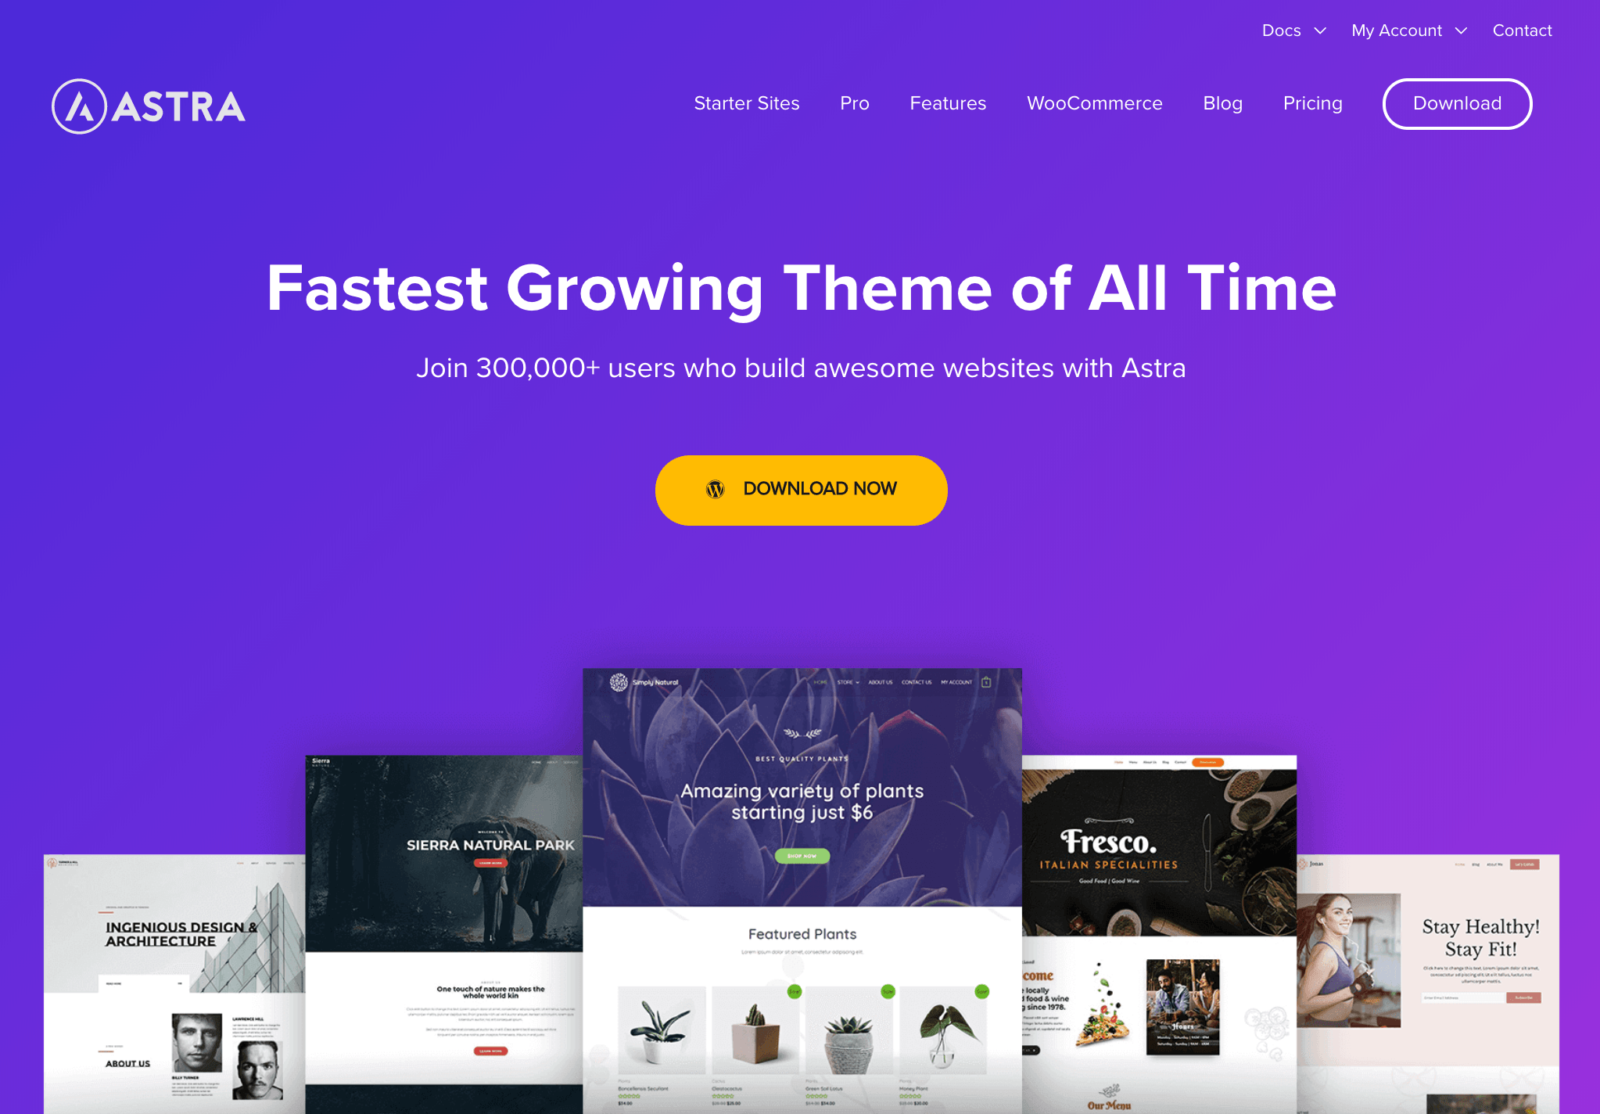 Astra Theme - Fastest Growing Theme of All Time